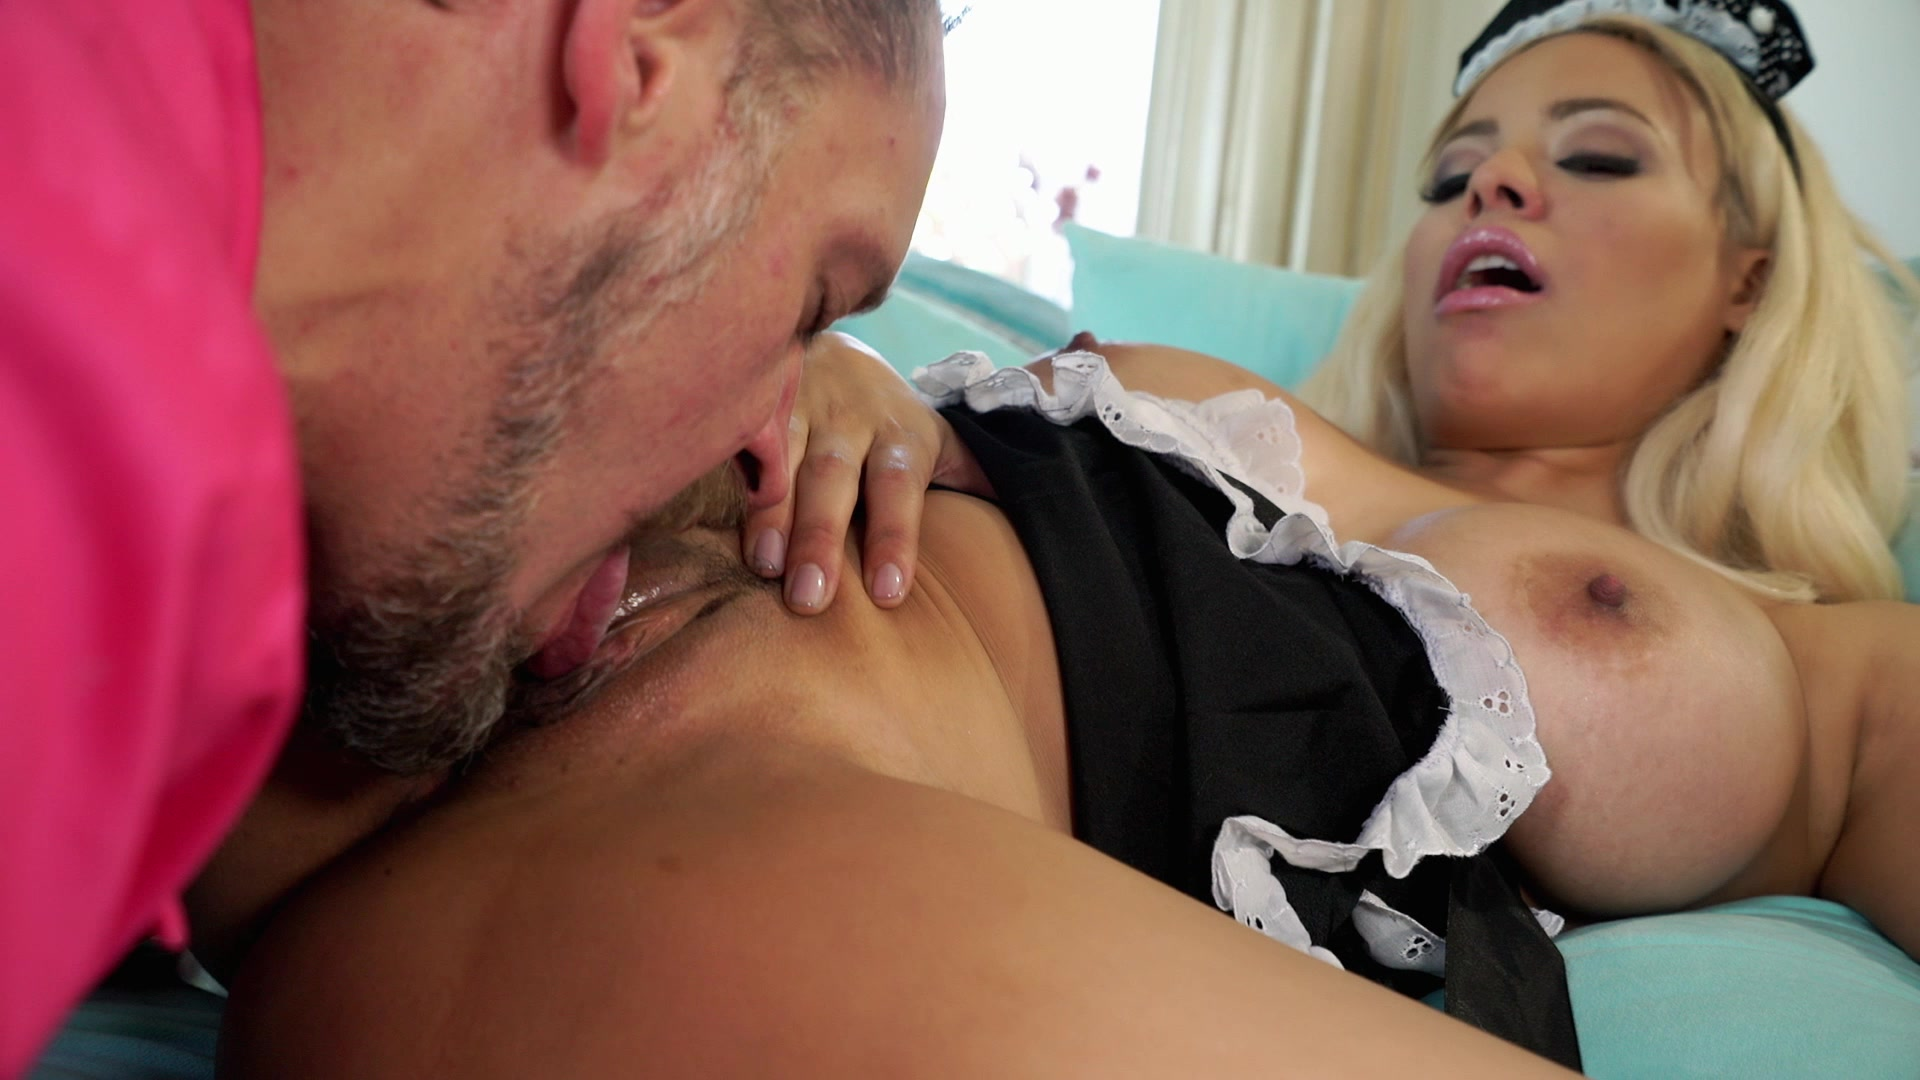 Scene with Luna Star - image 10 out of 20